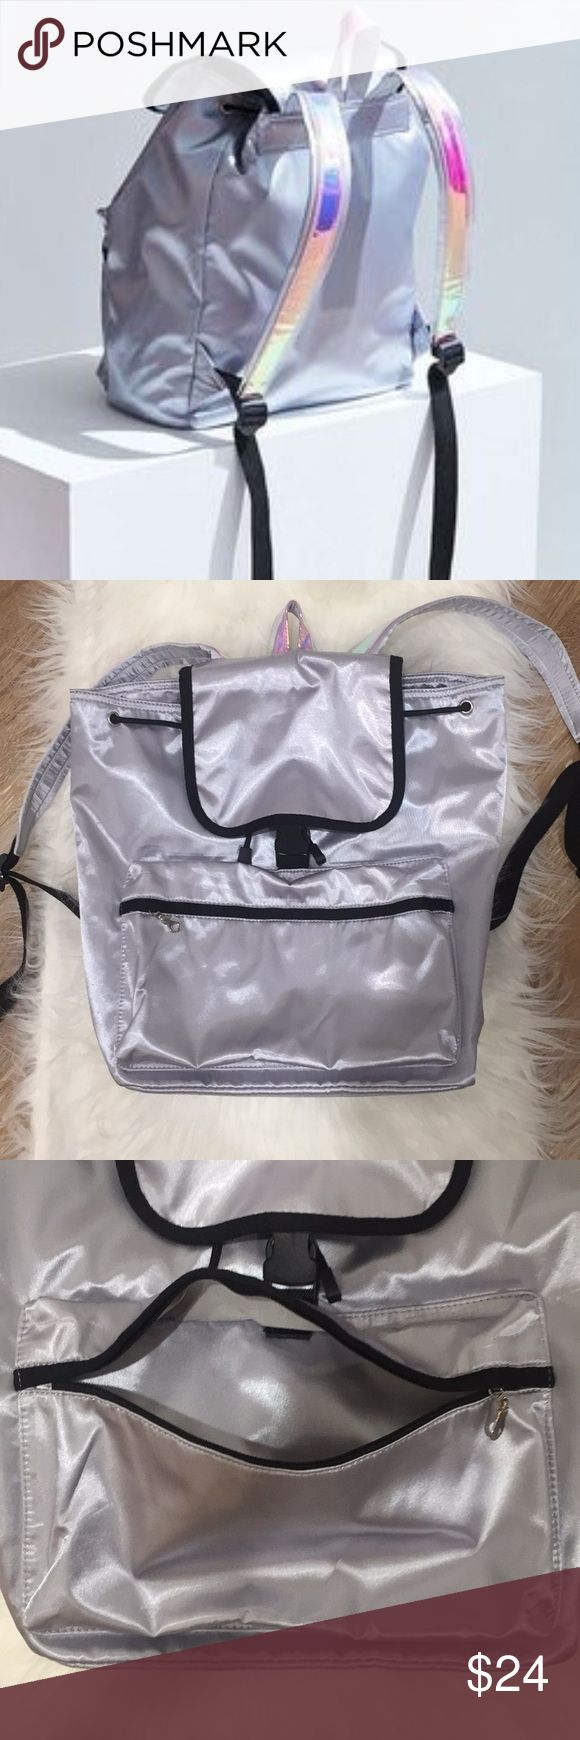 NWT Urban Outfitters Silver Metallic Backpack 80's throwback! Go back to school with this super unique and trendy silver UO metallic backpack. Urban Outfitters Bags Backpacks